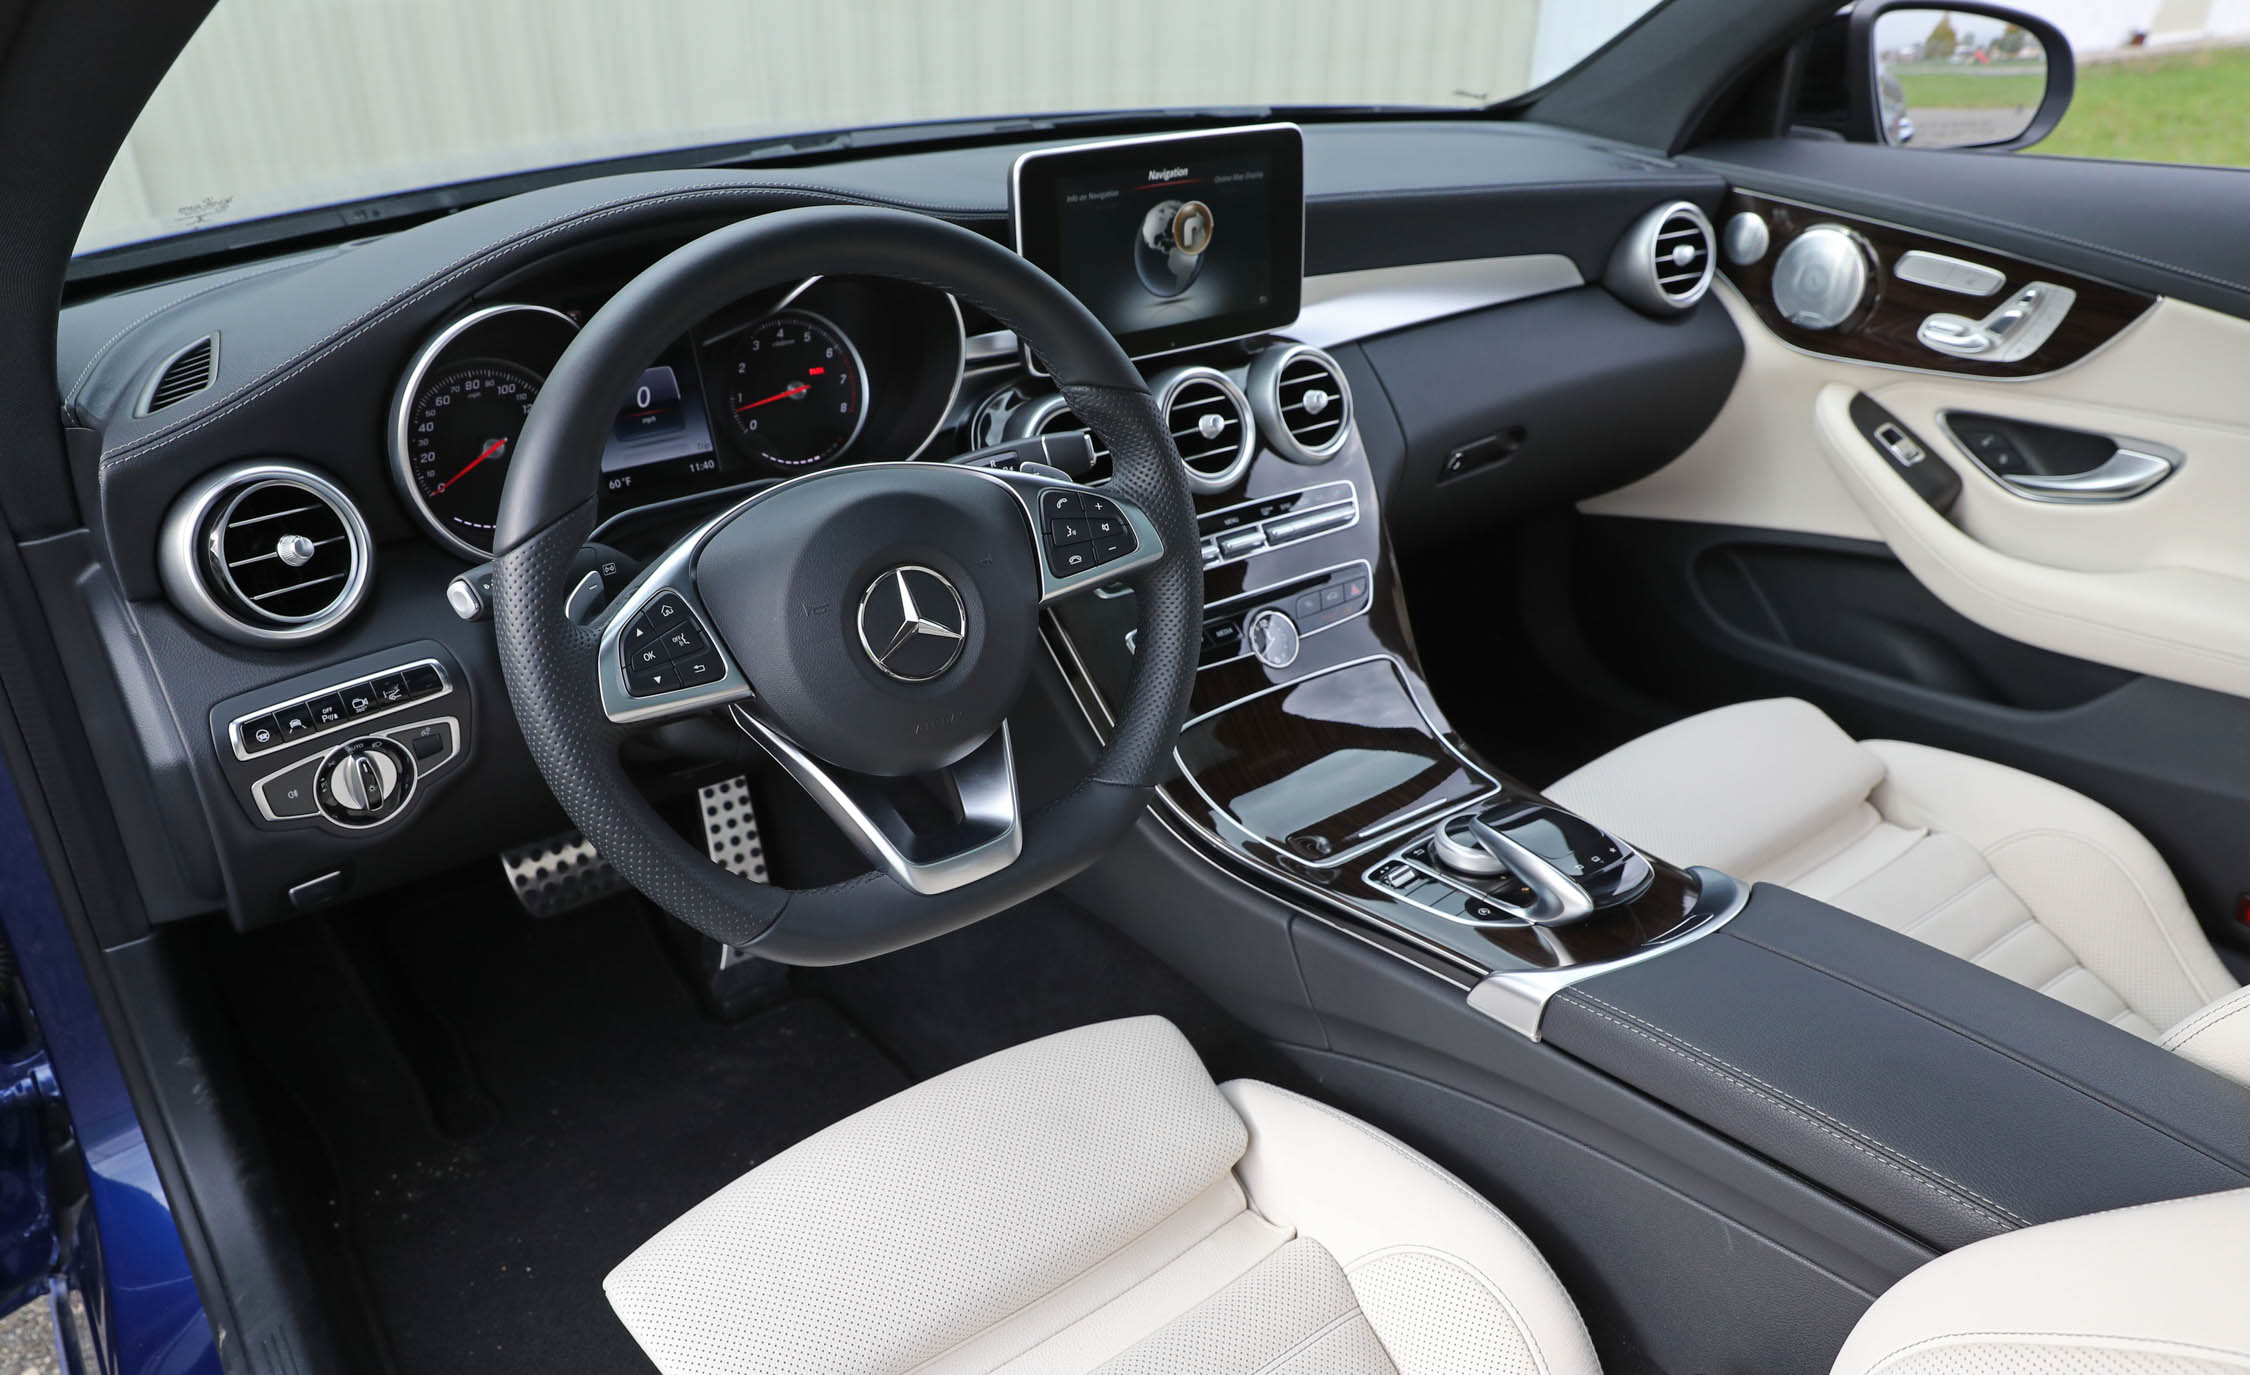 2017 Mercedes Benz C300 4MATIC Coupe Interior Cockpit And Dash (View 28 of 44)